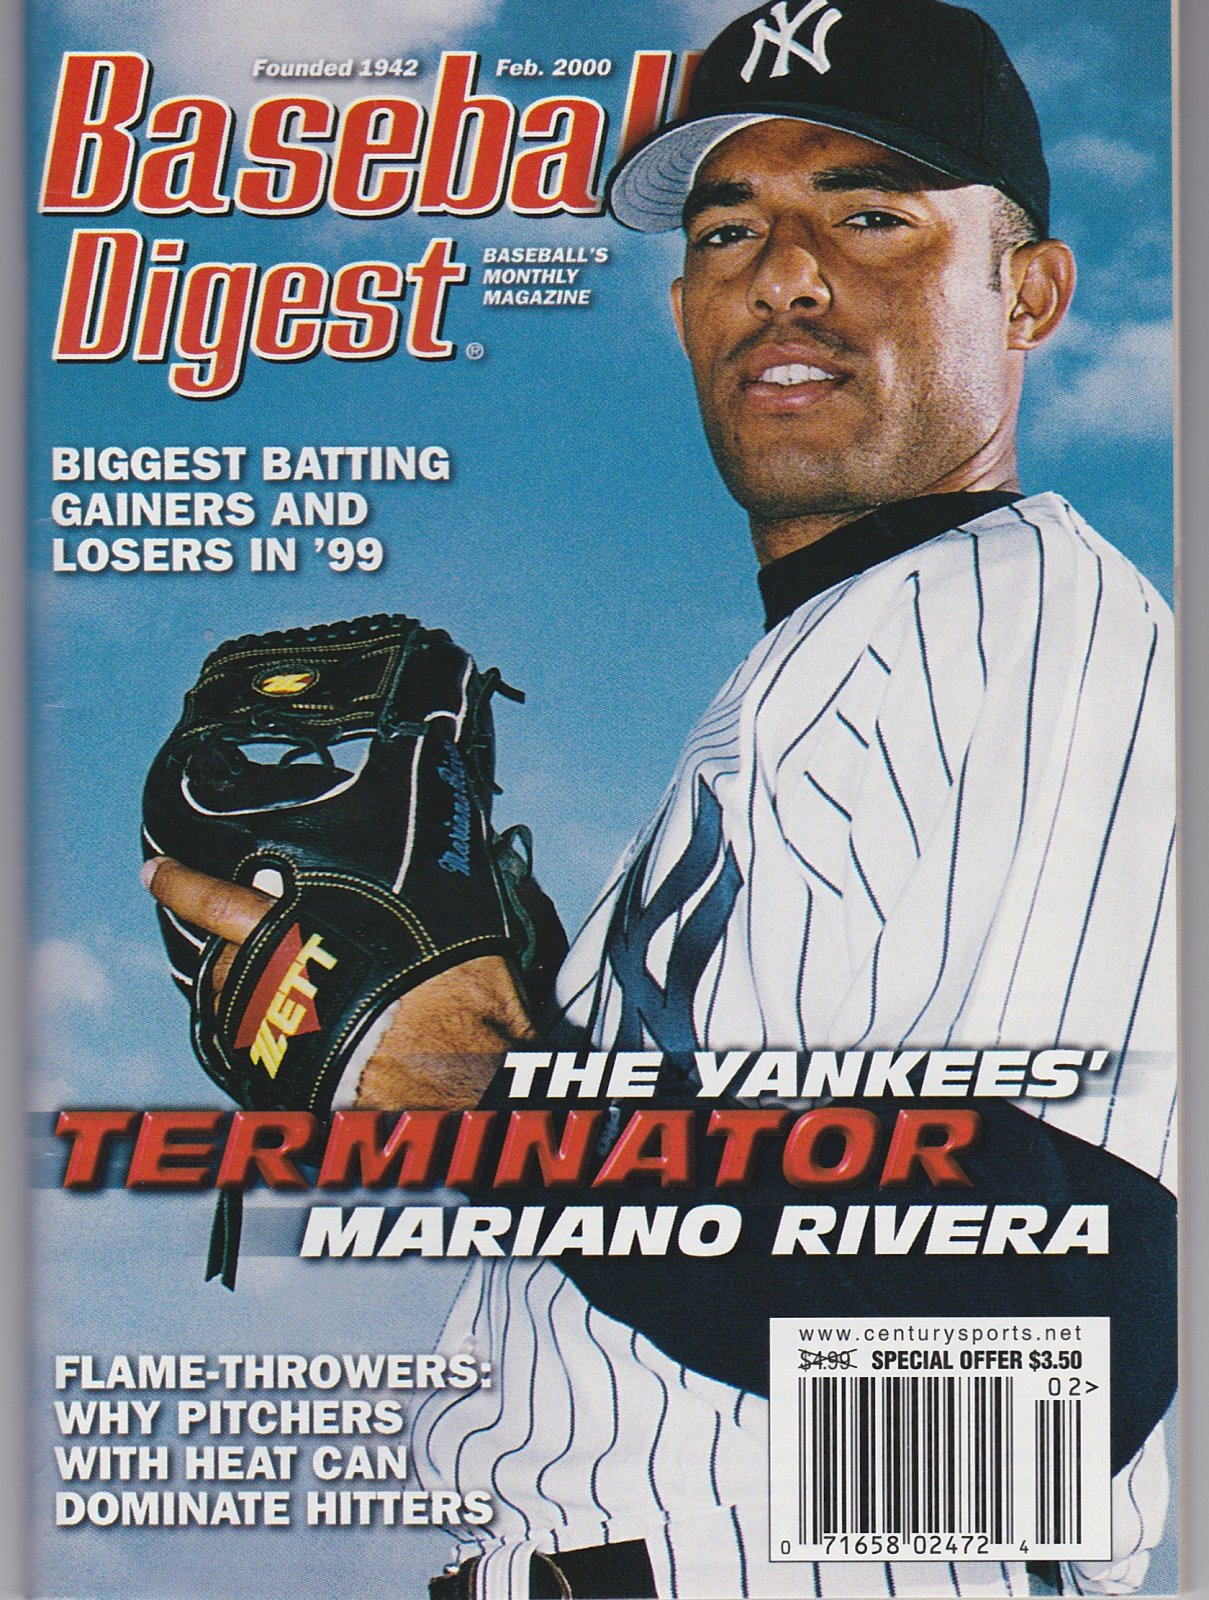 Baseball Digest Baseball's Monthly Magazine Feb. 2000